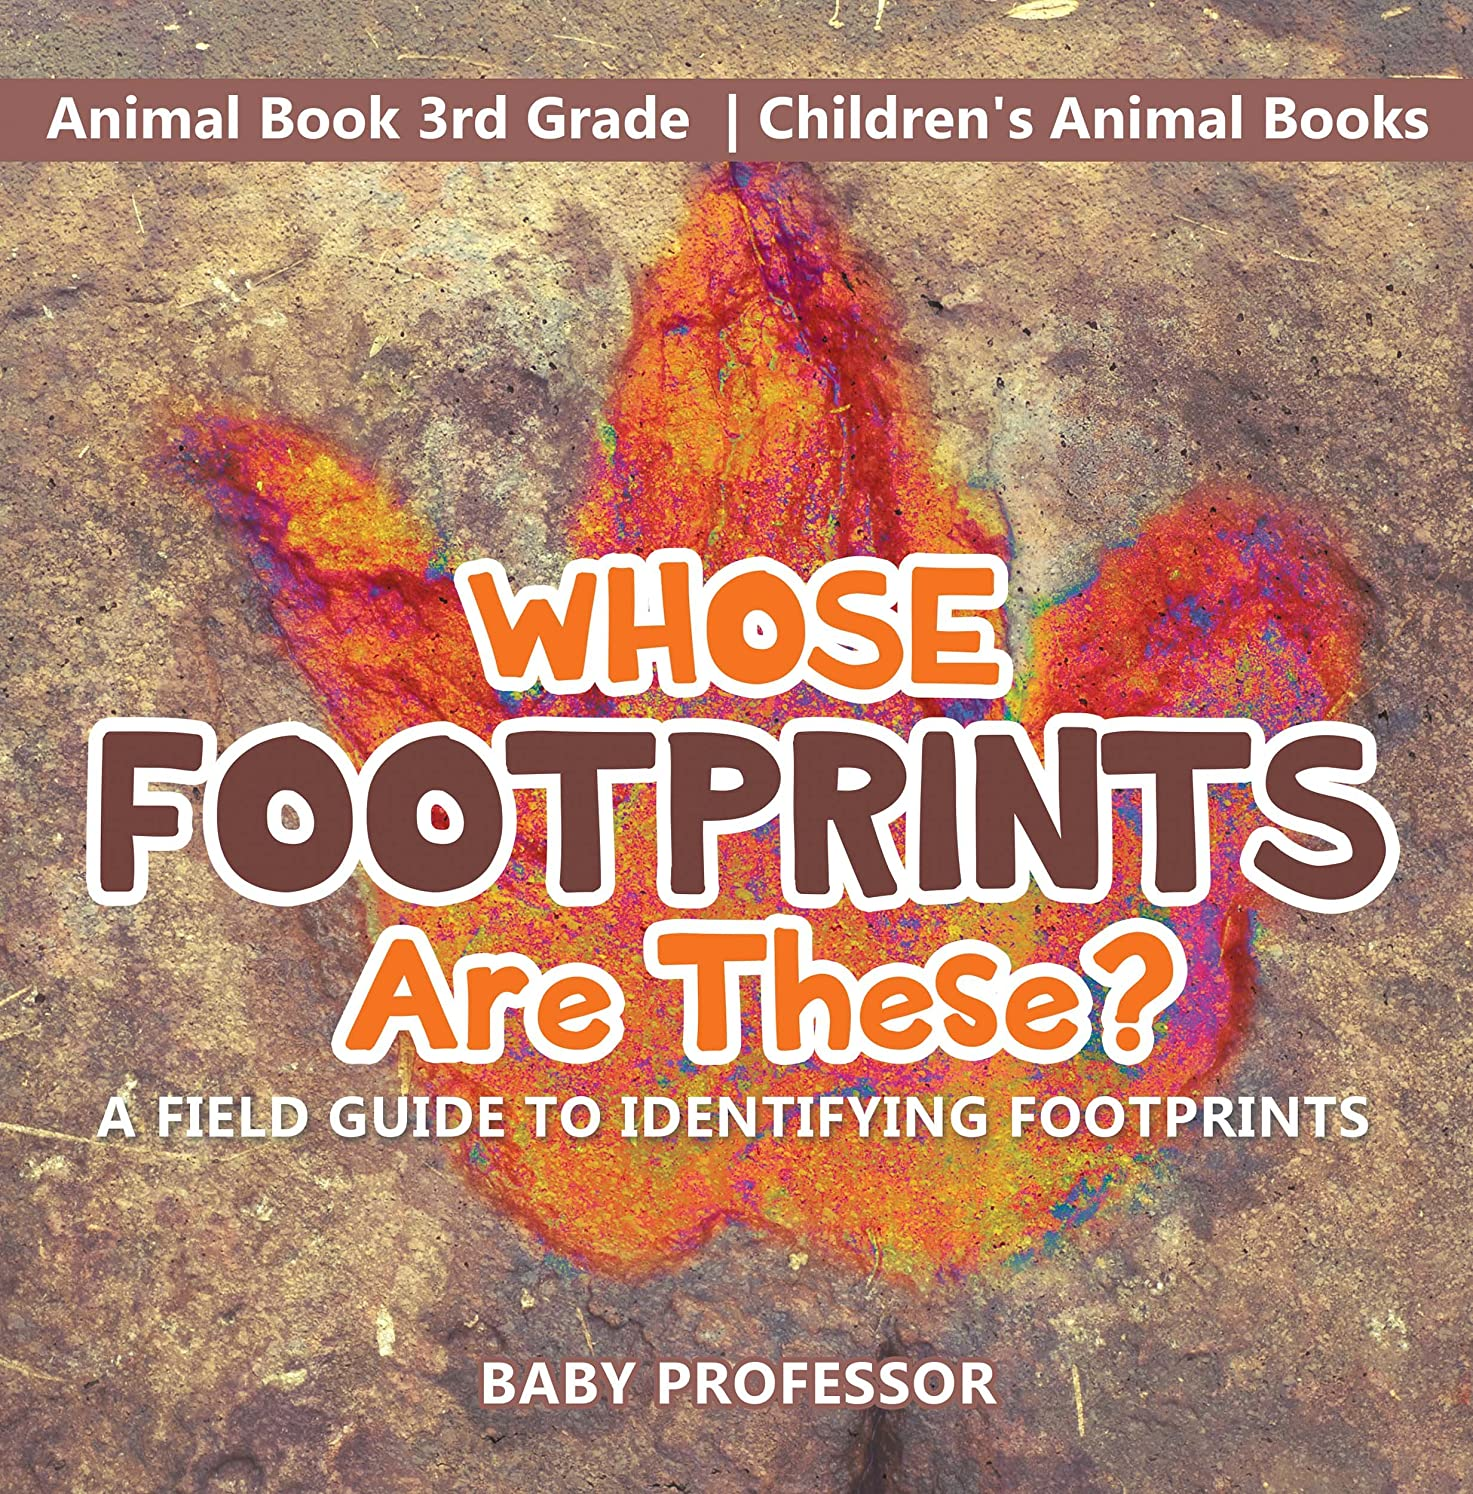 かろうじて生まれそうでなければWhose Footprints Are These? A Field Guide to Identifying Footprints - Animal Book 3rd Grade | Children's Animal Books (English Edition)